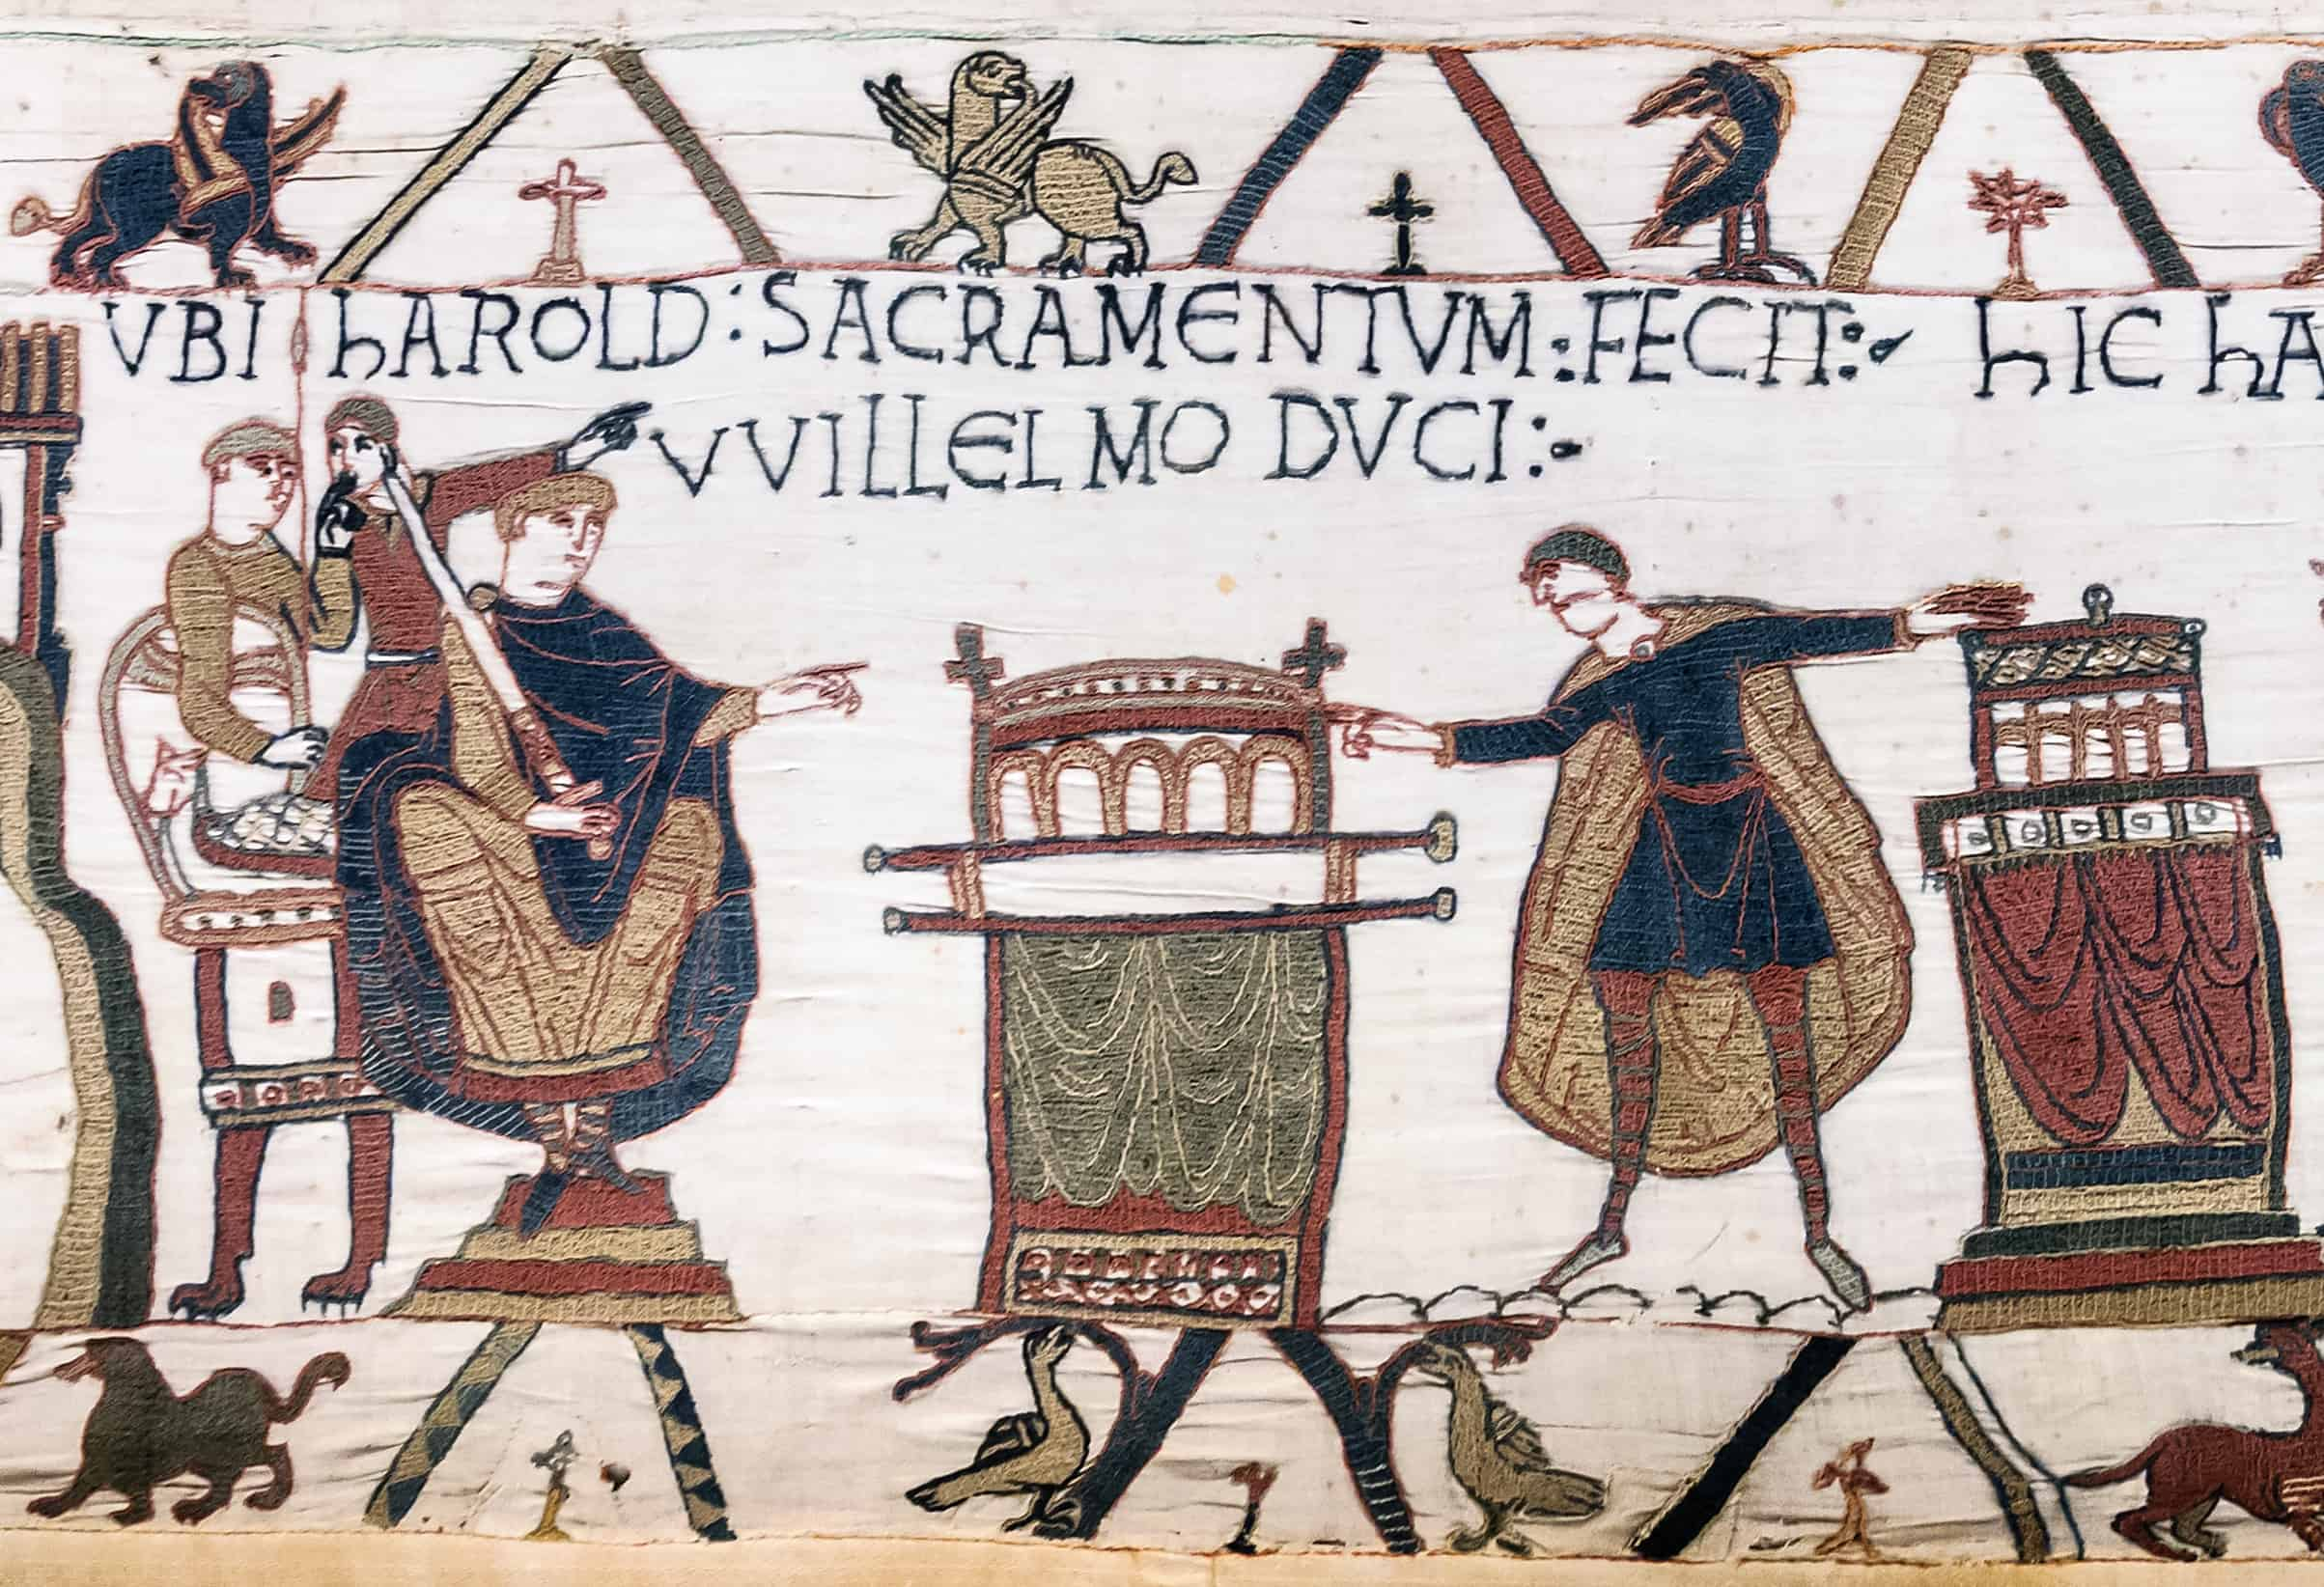 Harold swearing an oath to William of Normandy